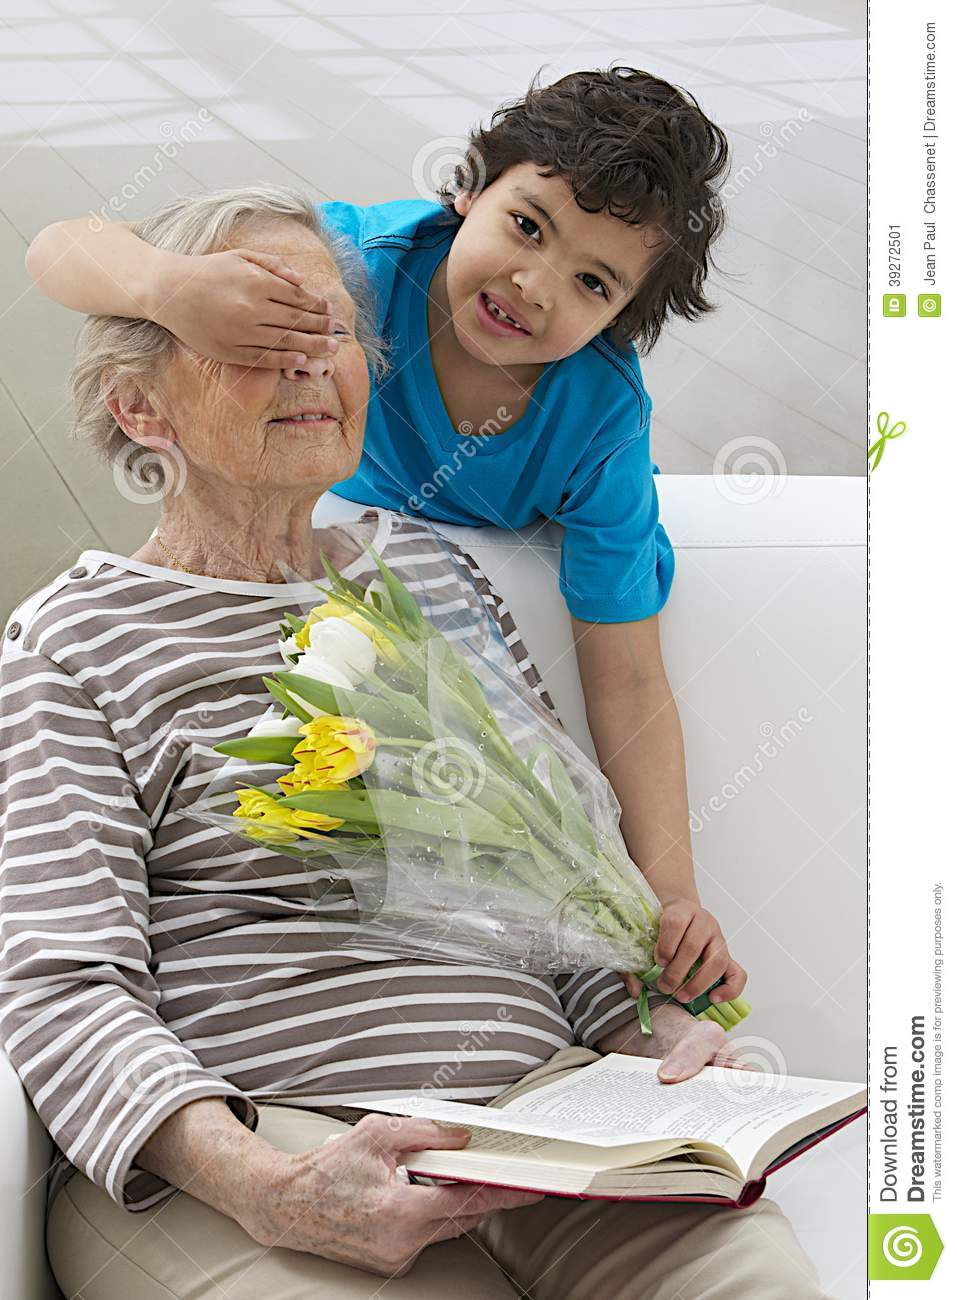 grandmother dating her grandson Dating our granddaughters my late grandmother was still having her say when she too young yet for me to wrap my mind around the thoughts of her dating yet.